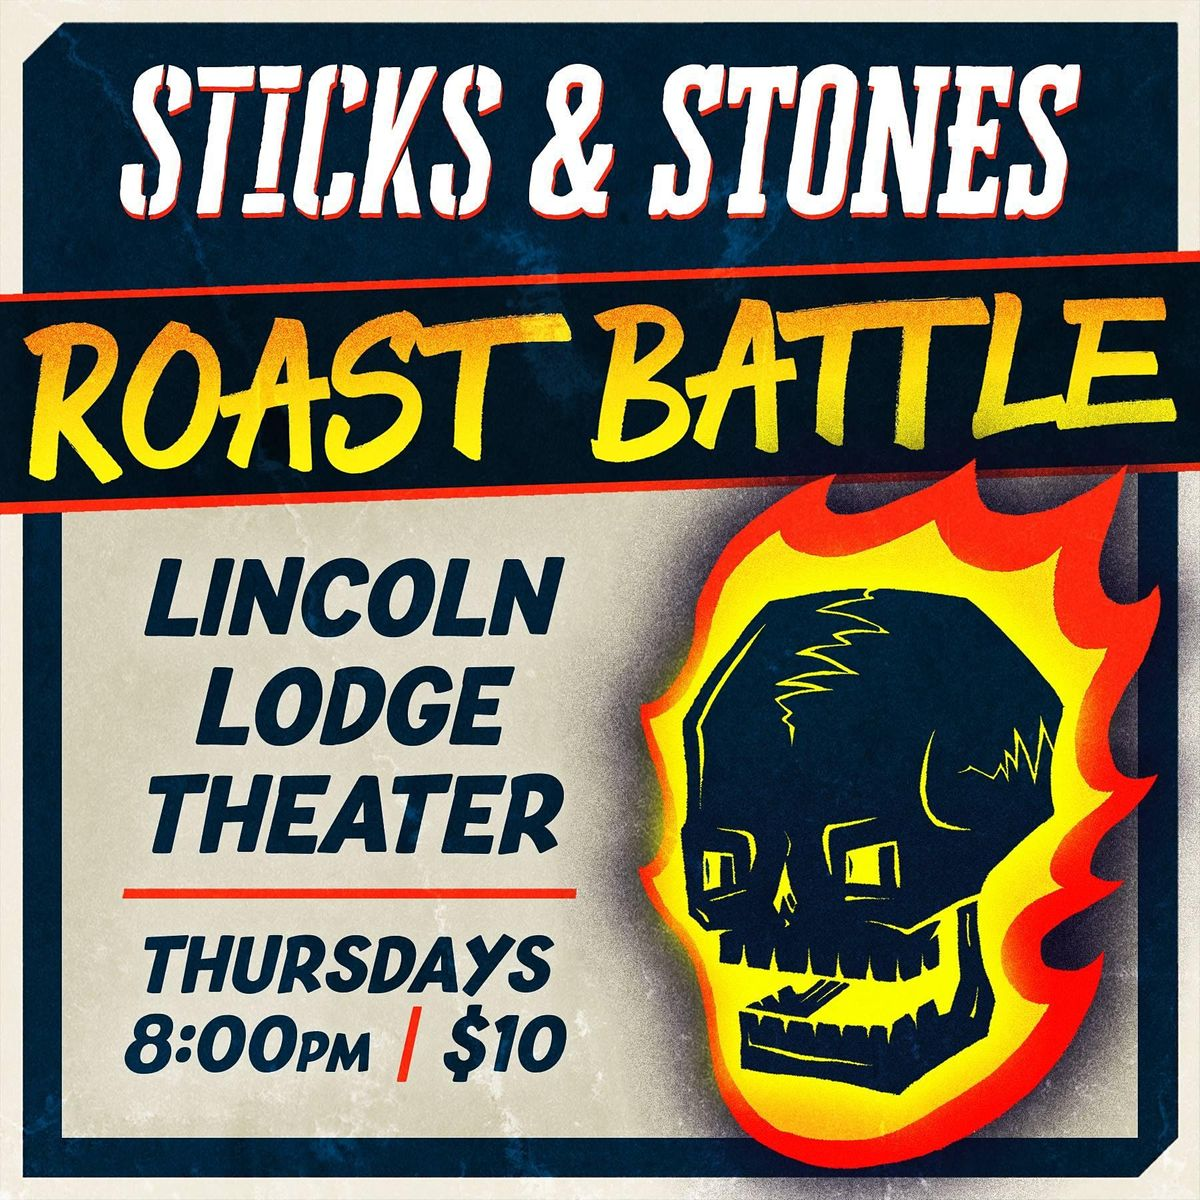 Sticks & Stones - A Roast Battle Comedy Show | Event in Chicago | AllEvents.in